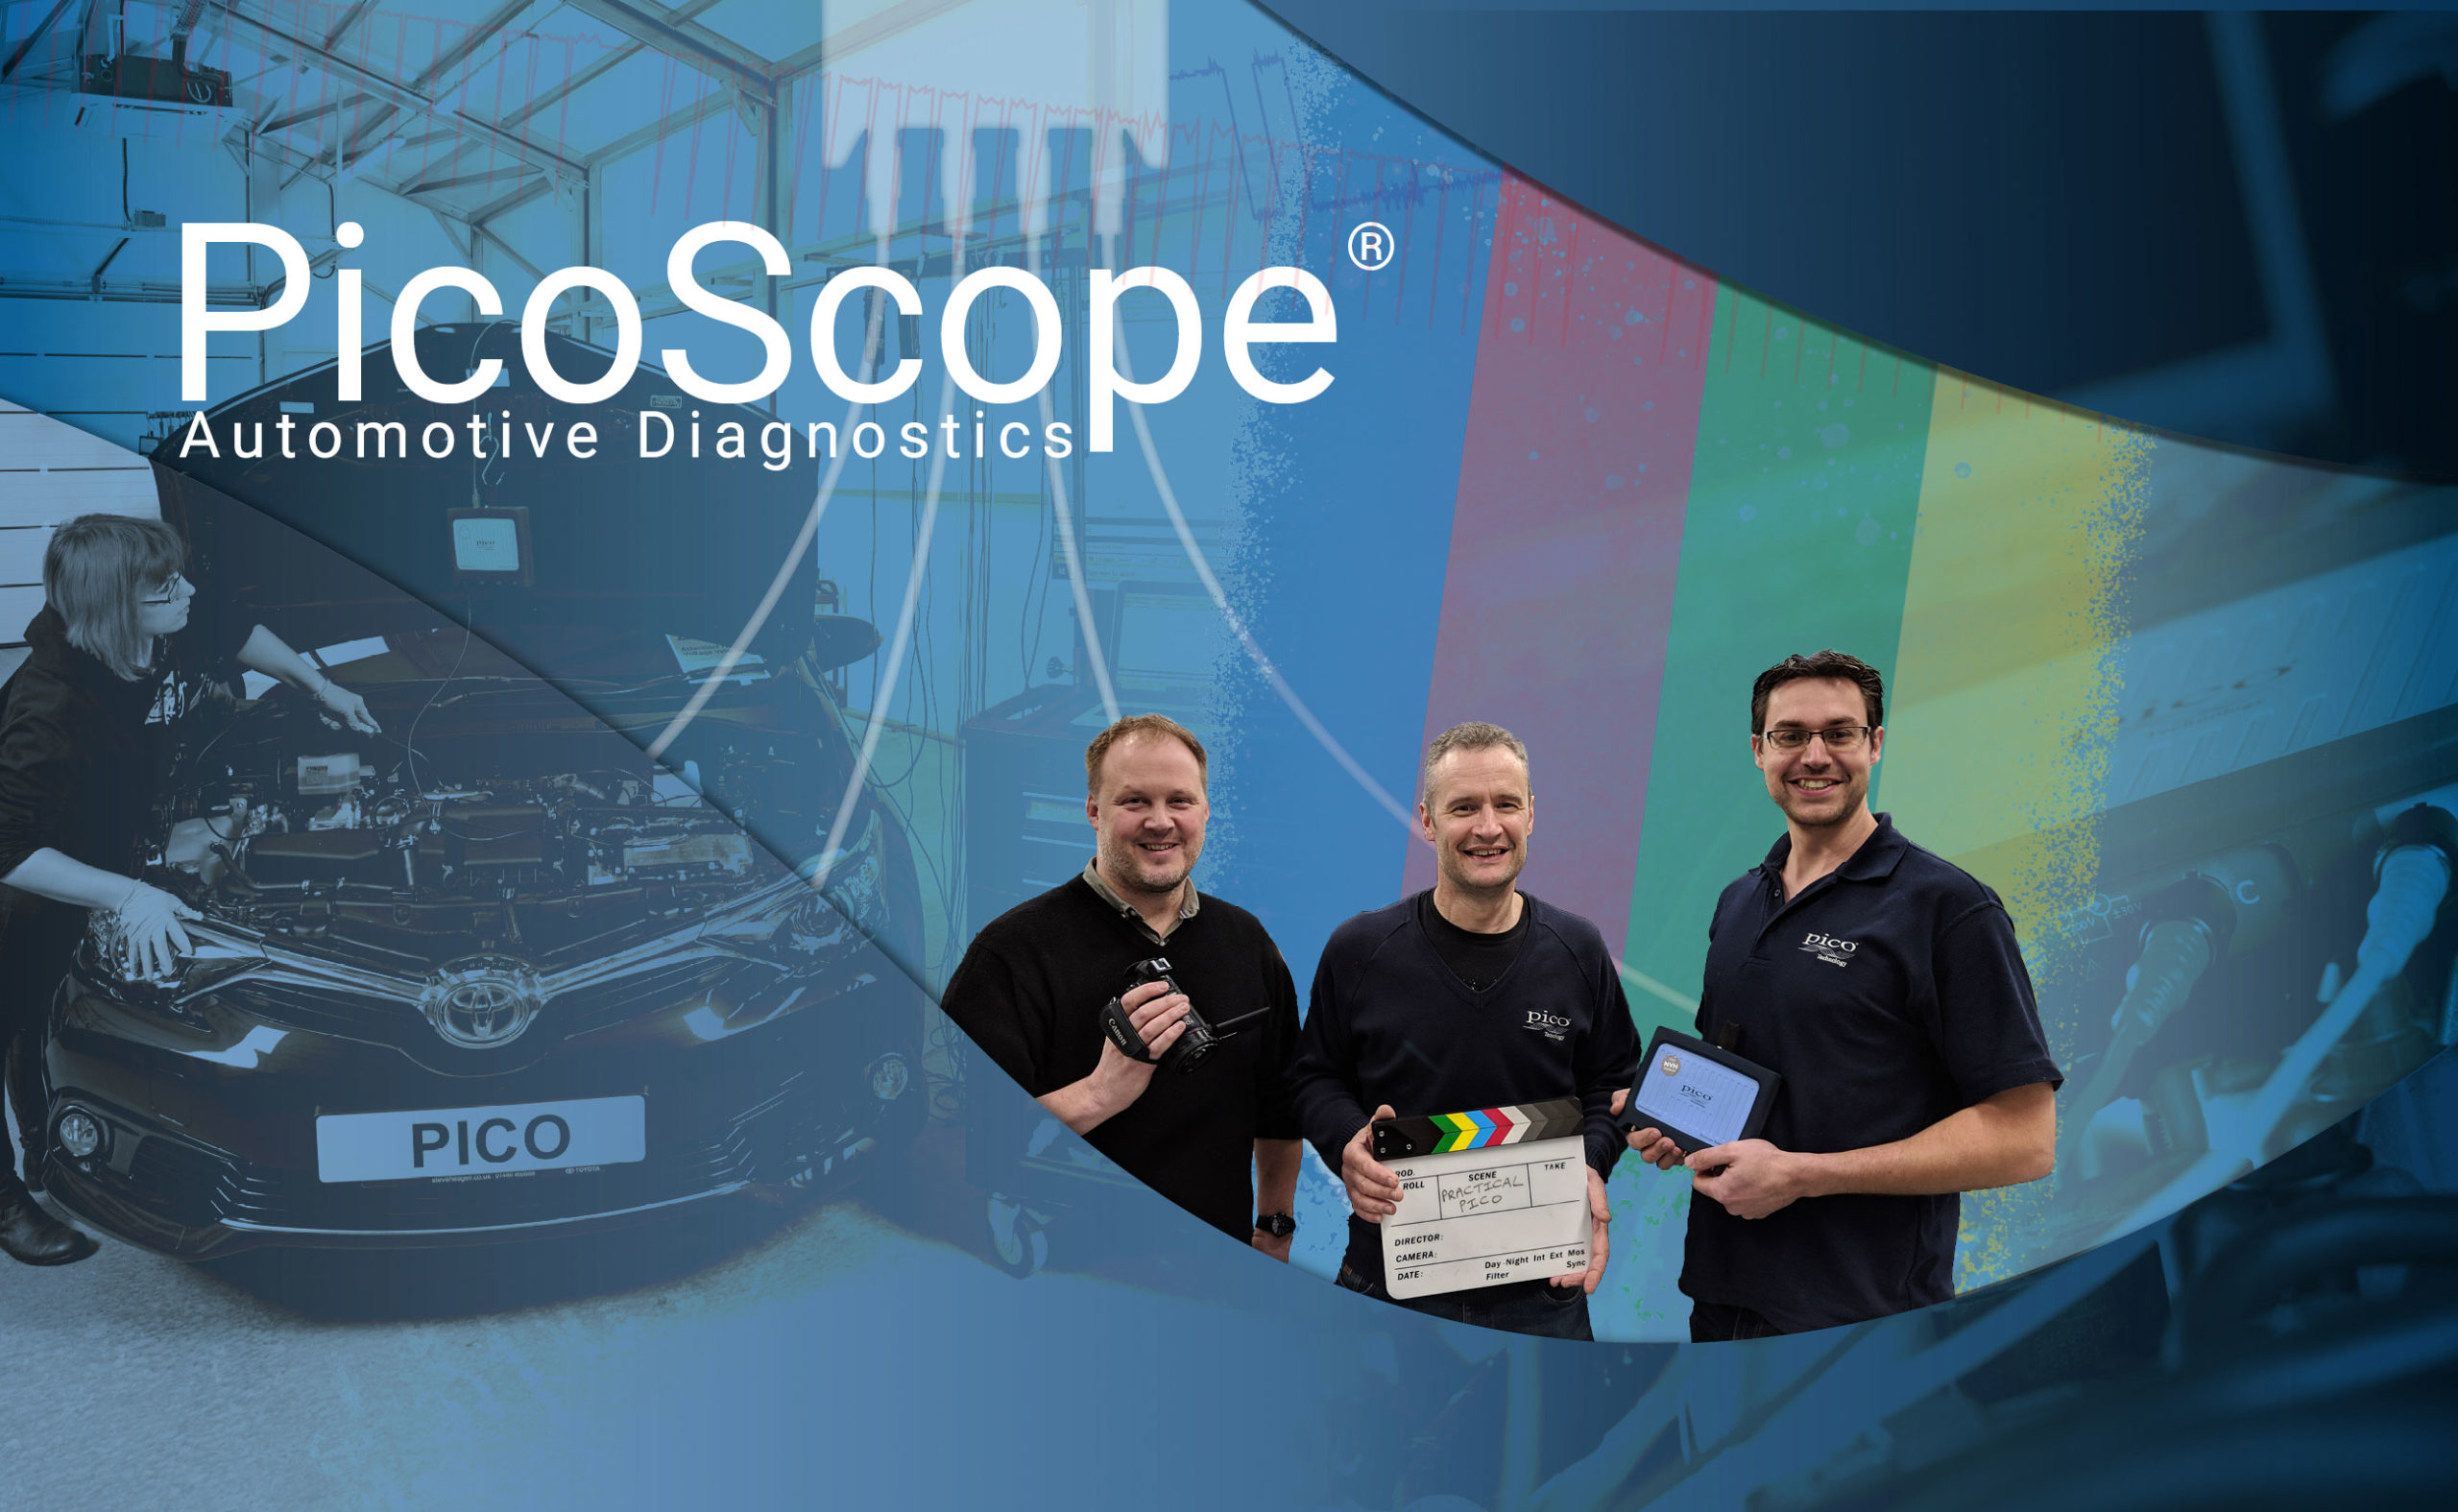 Picoscope Automotive